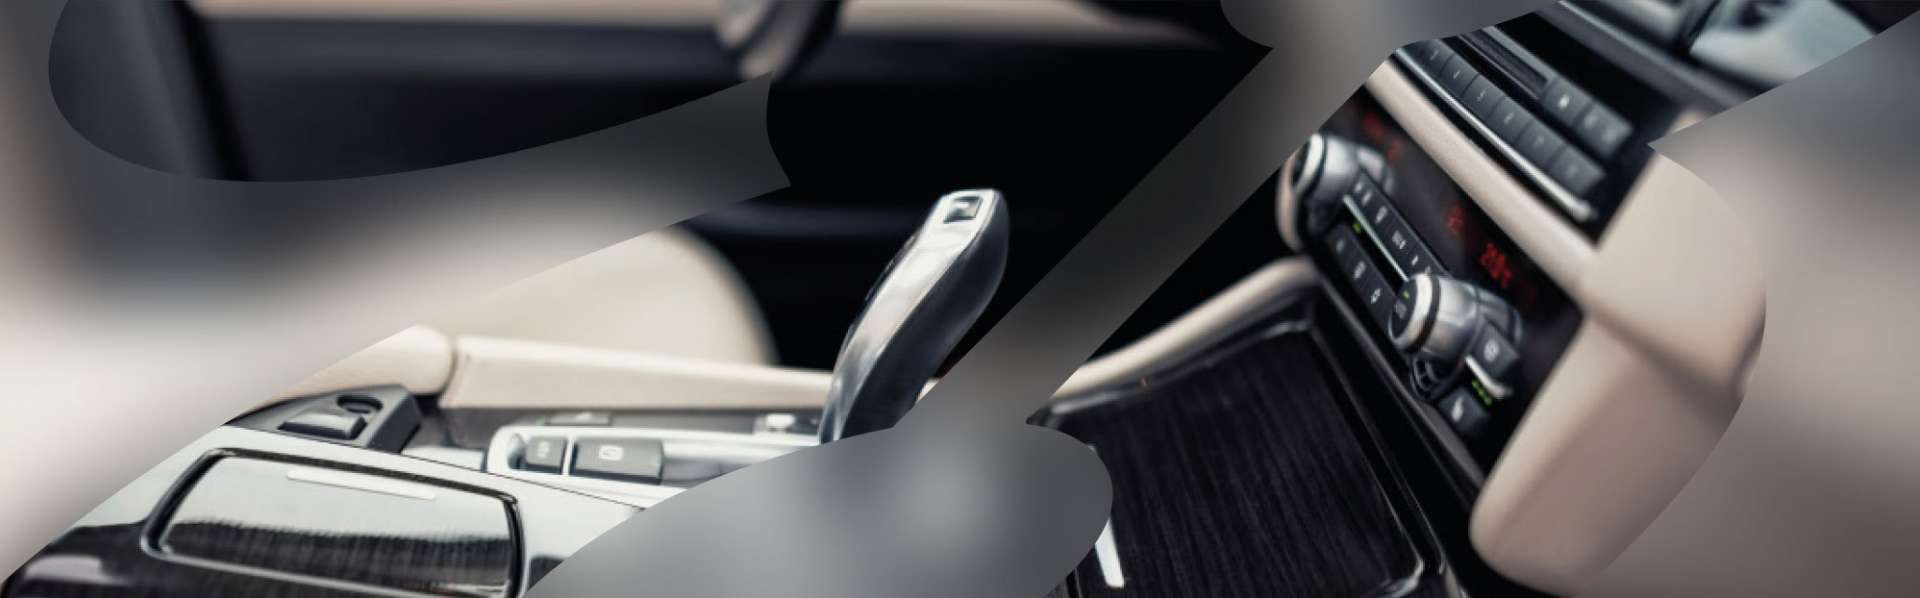 Adhesives, Sealants & Plastic parts & components used in the Automotive Industry